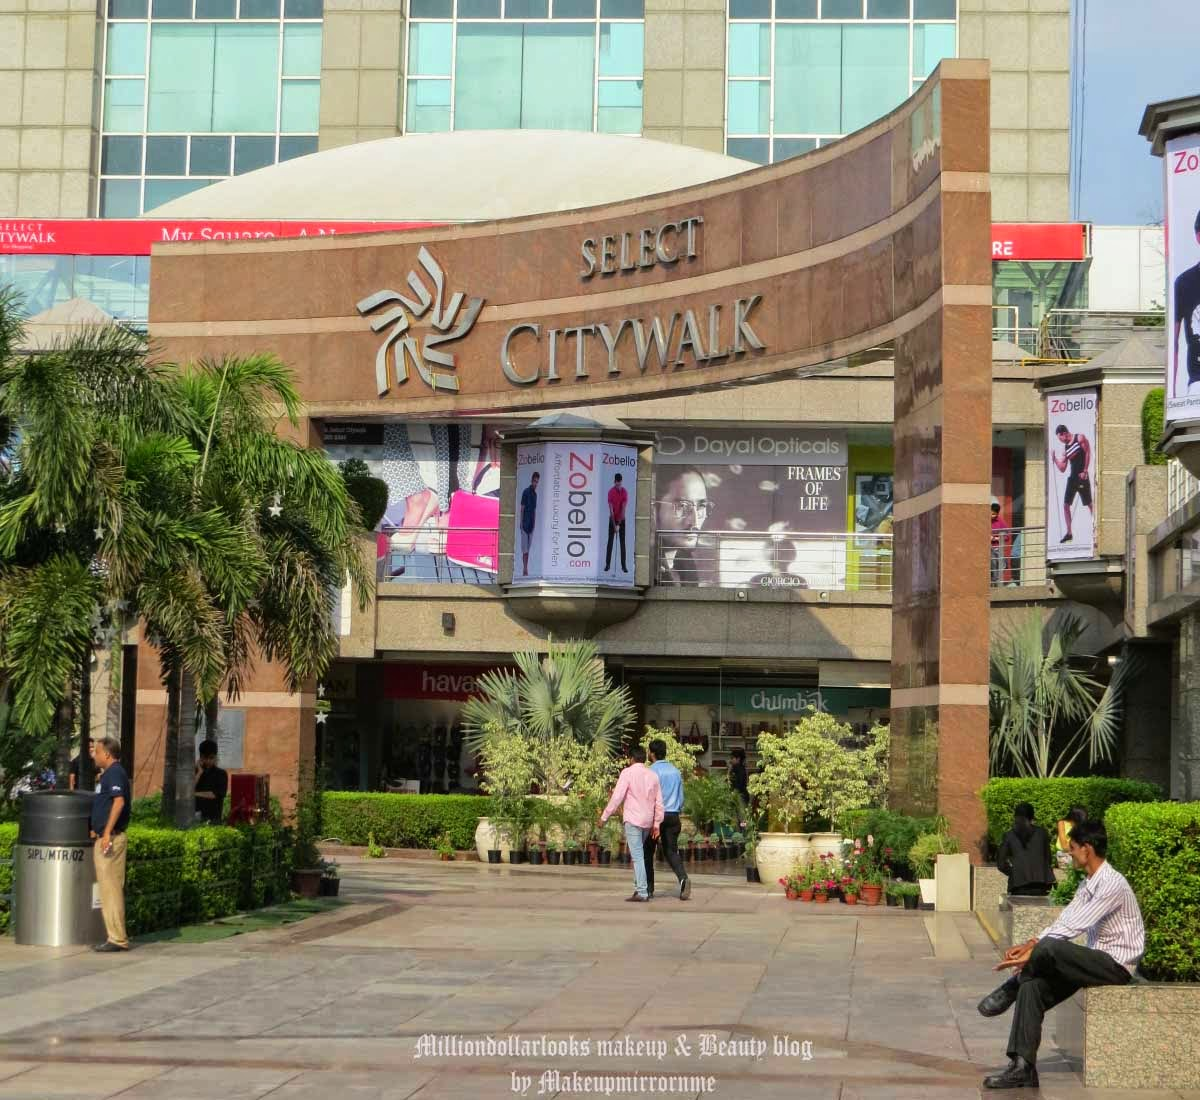 Select CITYWALK: Delhi's very own ultimate shopping destination, Best shopping destinations in India, a must visit places in Delhi, Finest shopping centre in Delhi, Where to buy high end fashion brands in Delhi, Select CITYWALK, Select CITYWALK review and experience, Best tourist destination for shopping in Delhi, indian makeup and beauty blog, indian beauty blogger, explore select citywalk with me, indian beauty blog